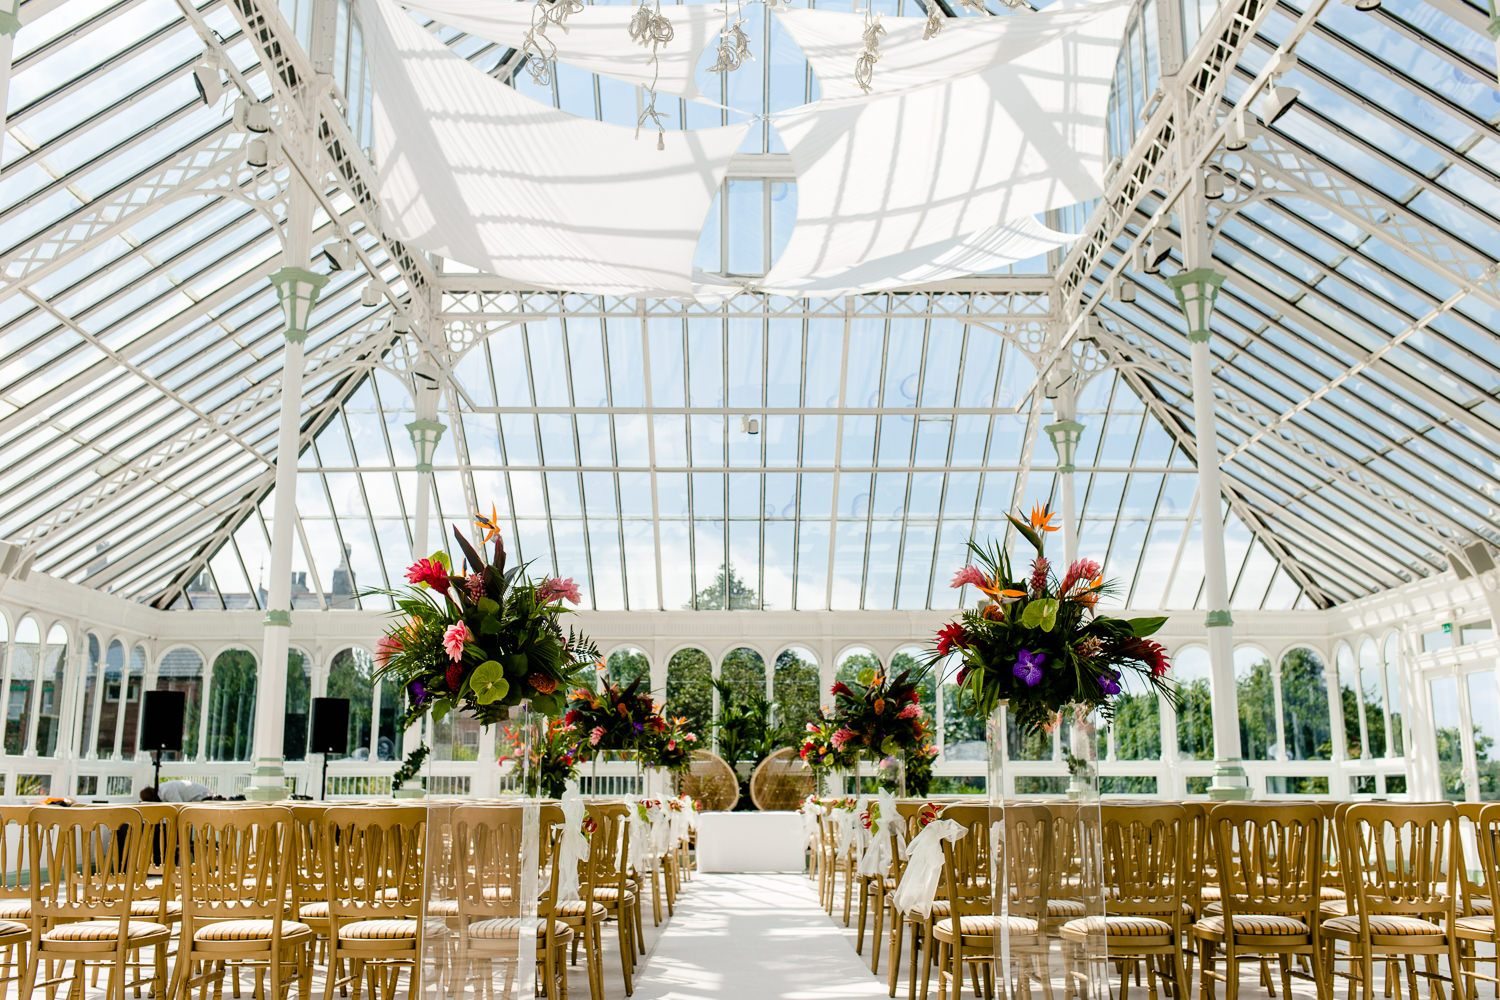 The Isla Gladstone in Liverpool set up for a wedding ceremony on a sunny day with tropical flowers.